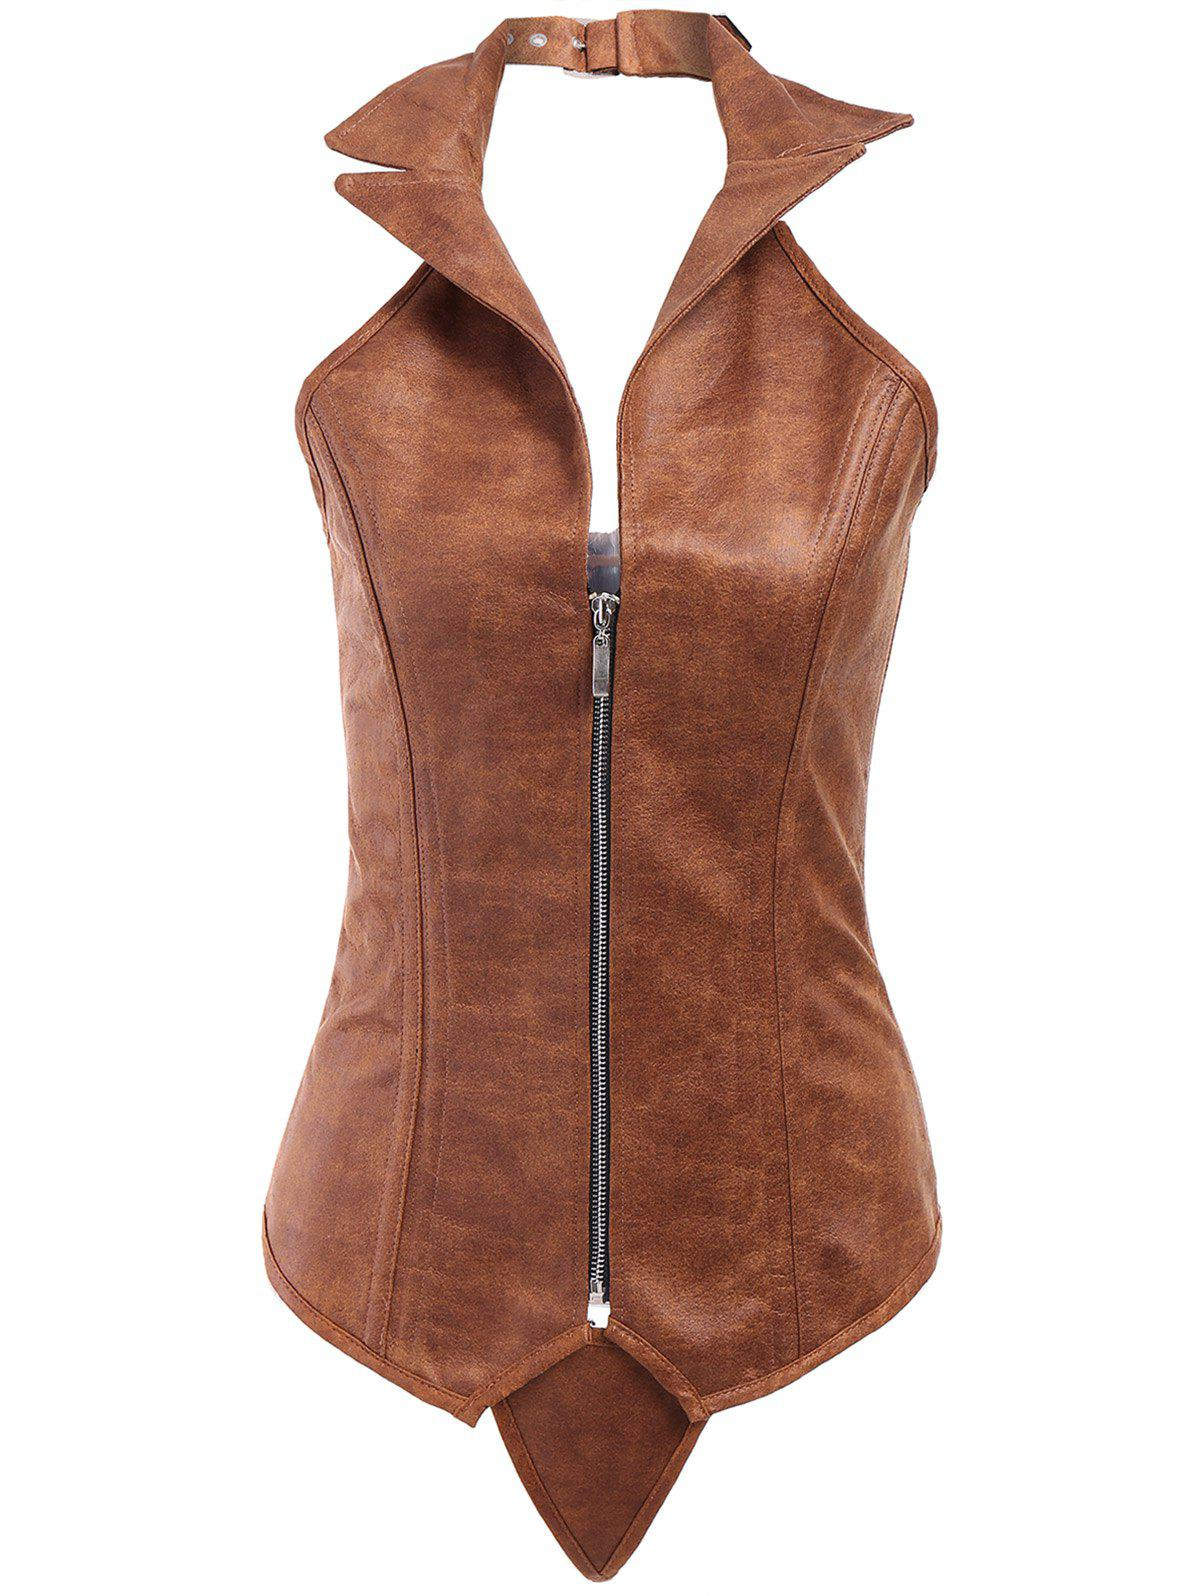 Sexy PU Leather Turn-Down Collar Corset For Women sexy halter pu leather splicing chained corset for women